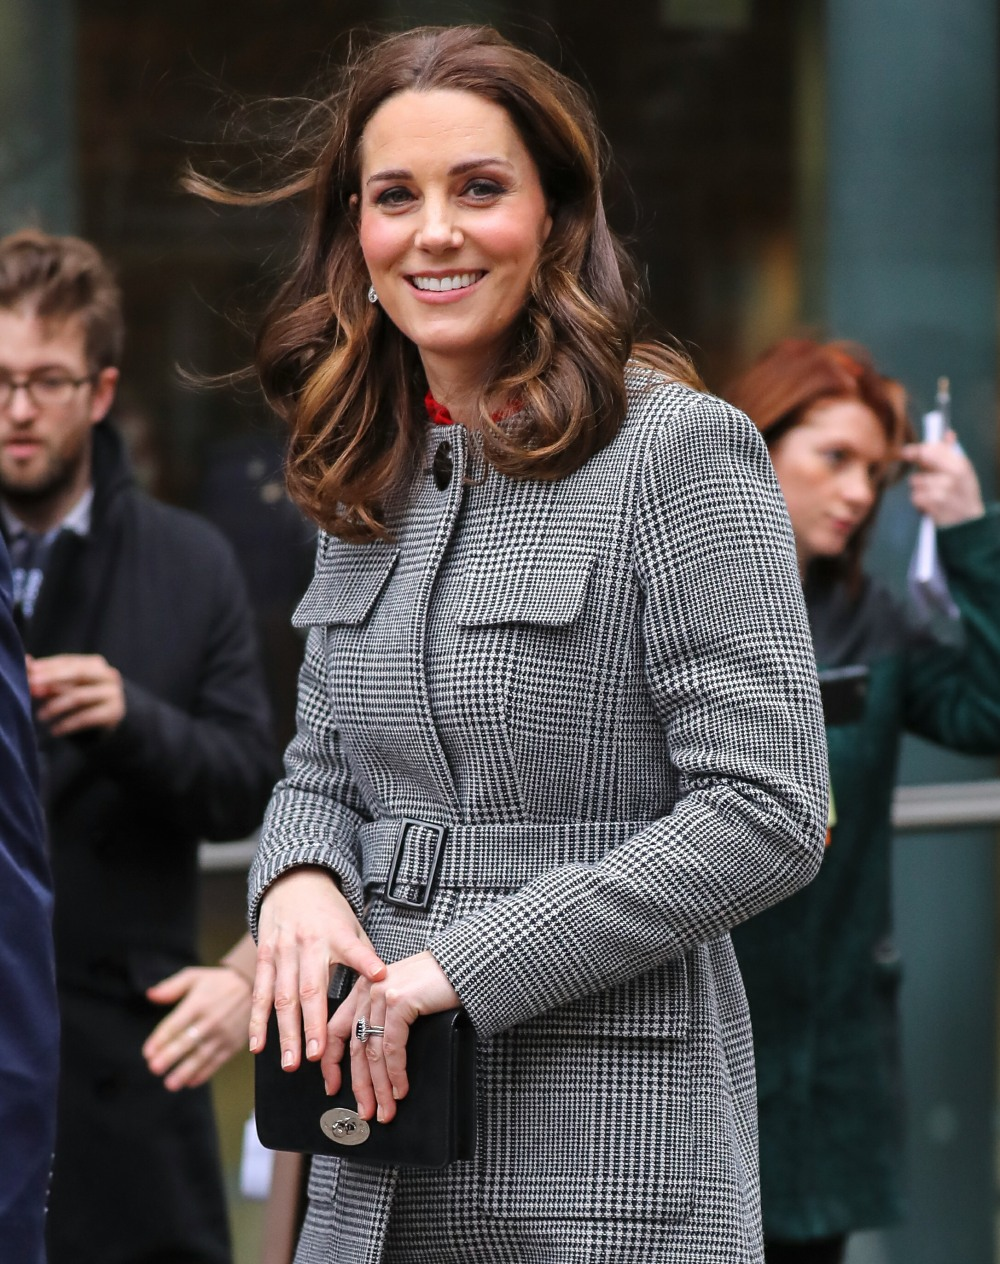 The Duke and Duchess of Cambridge attend the Children's Global Media Summit